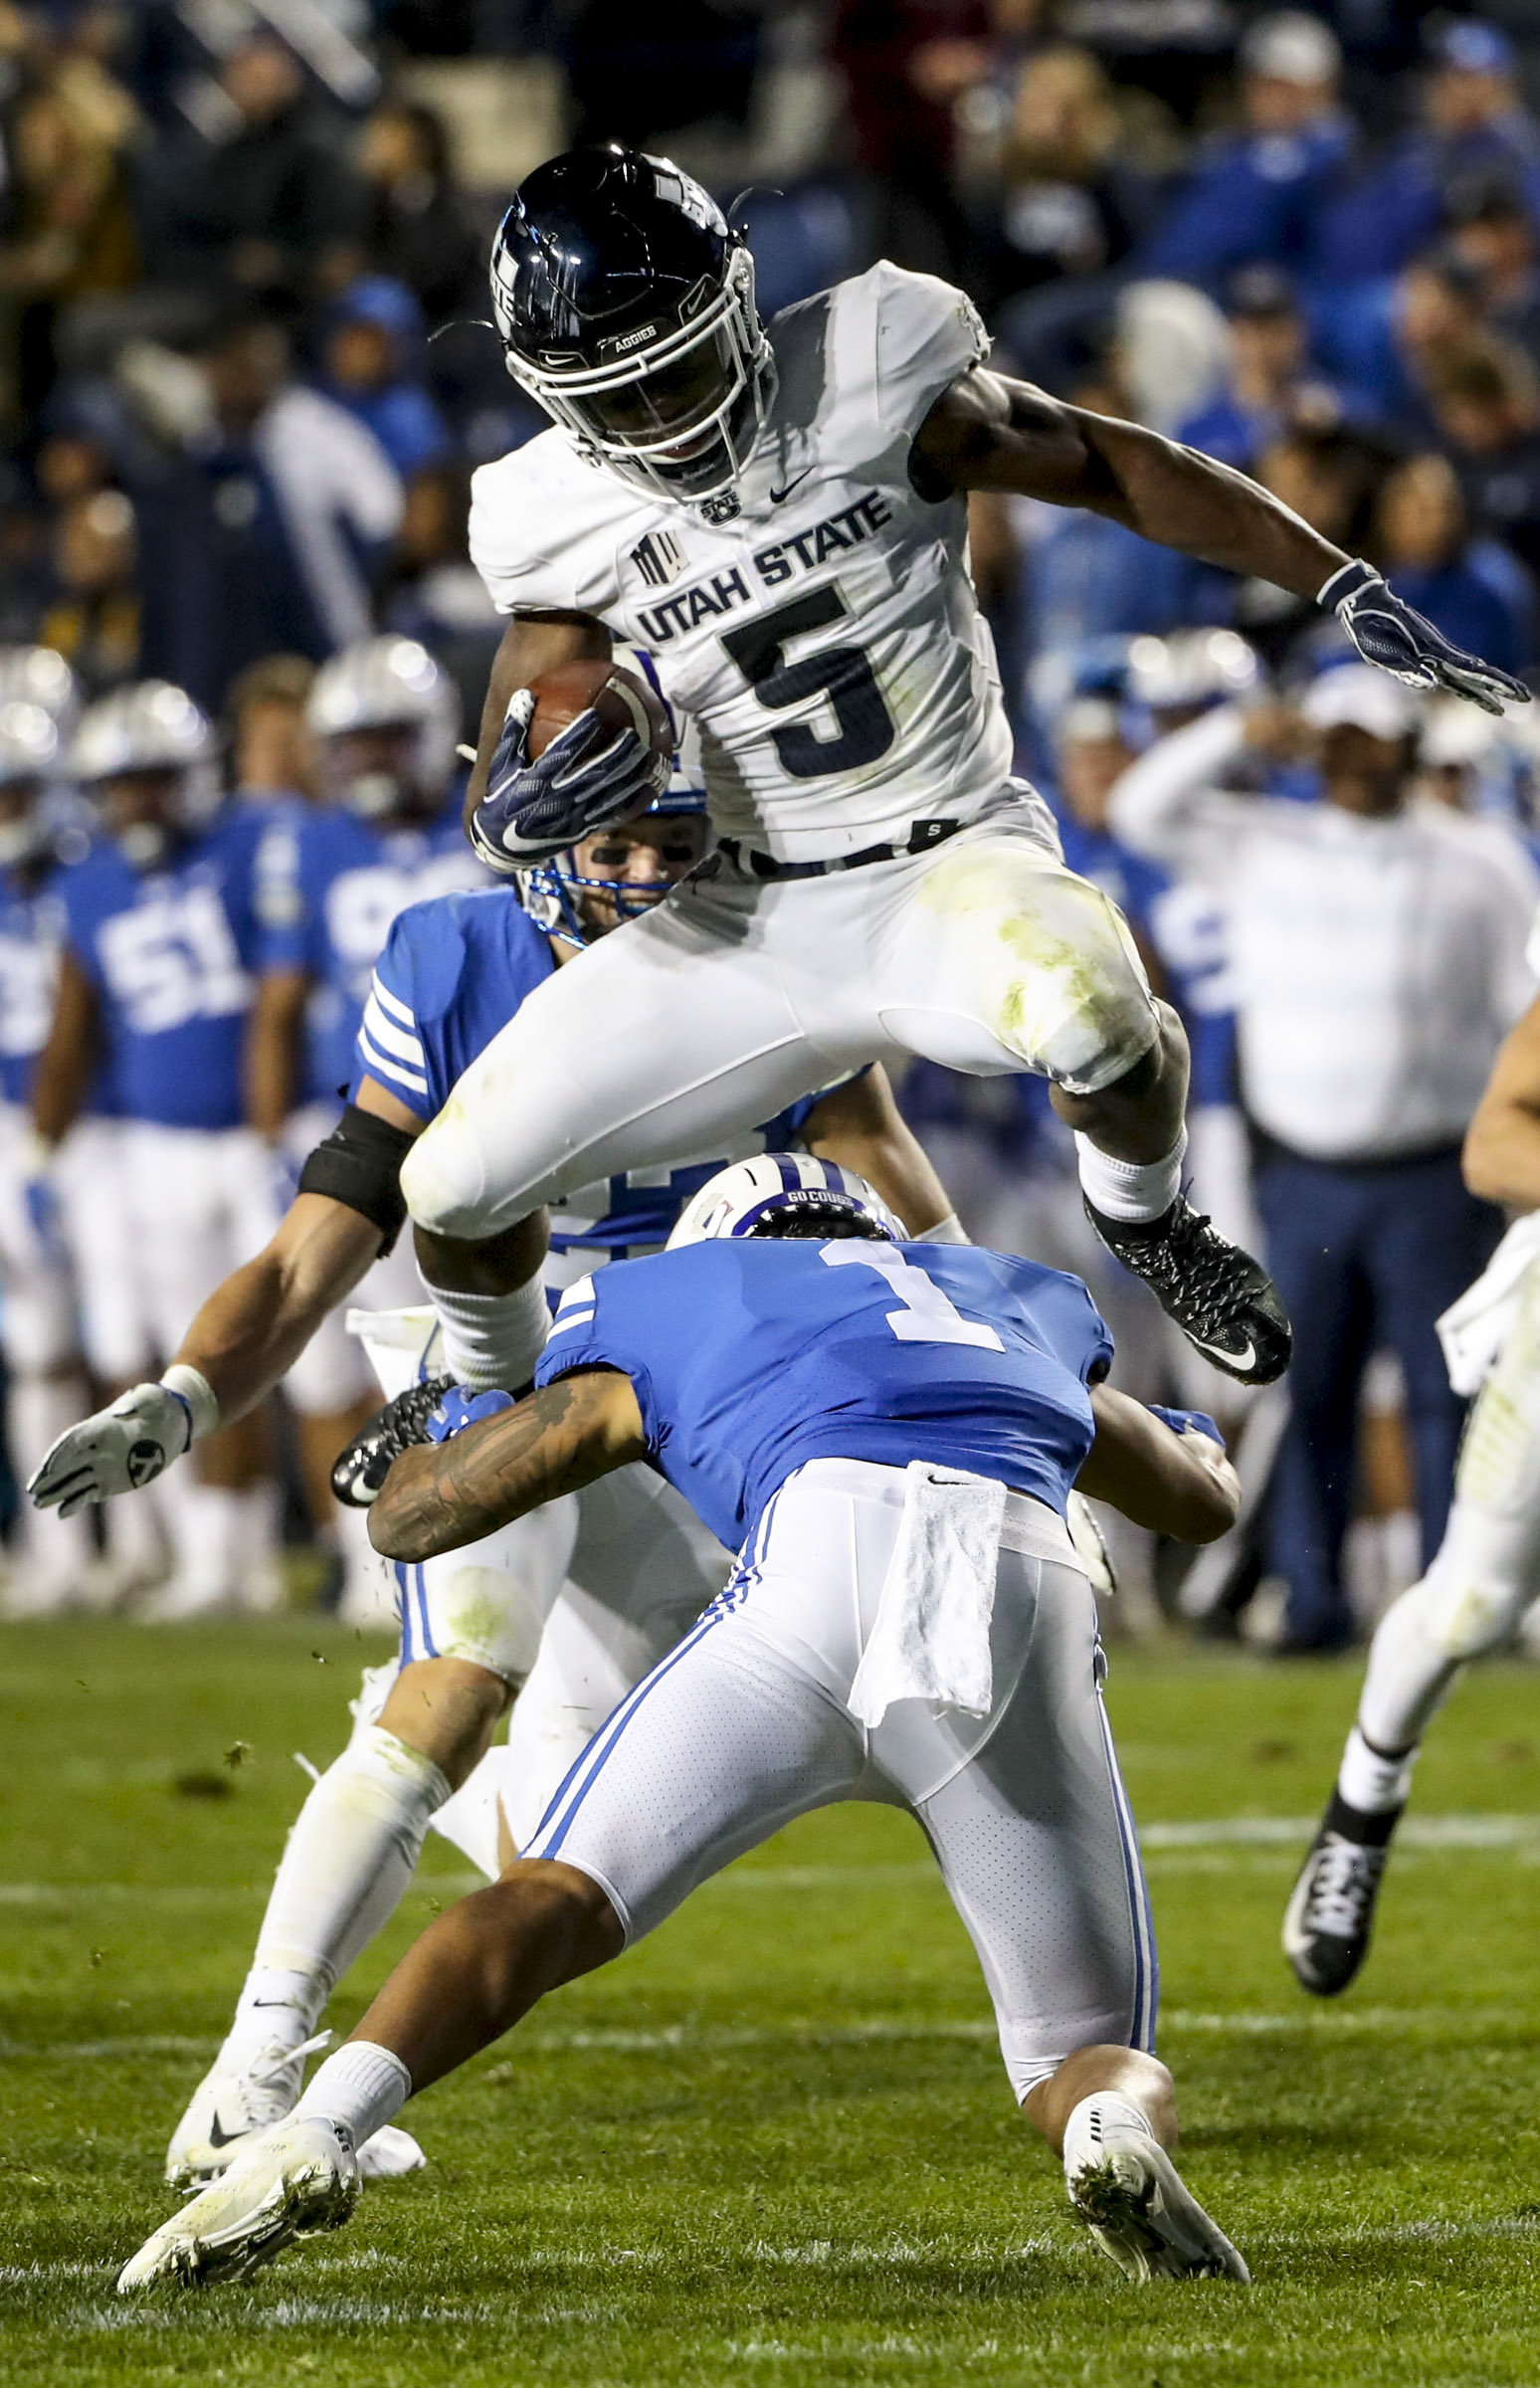 Utah State Aggies wide receiver Ron'quavion Tarver (1) hurdles Brigham Young Cougars defensive back Troy Warner (1) as he runs up the middle during the Utah State versus BYU football game at LaVell Edwards Stadium in Provo on Friday, Oct. 5, 2018.